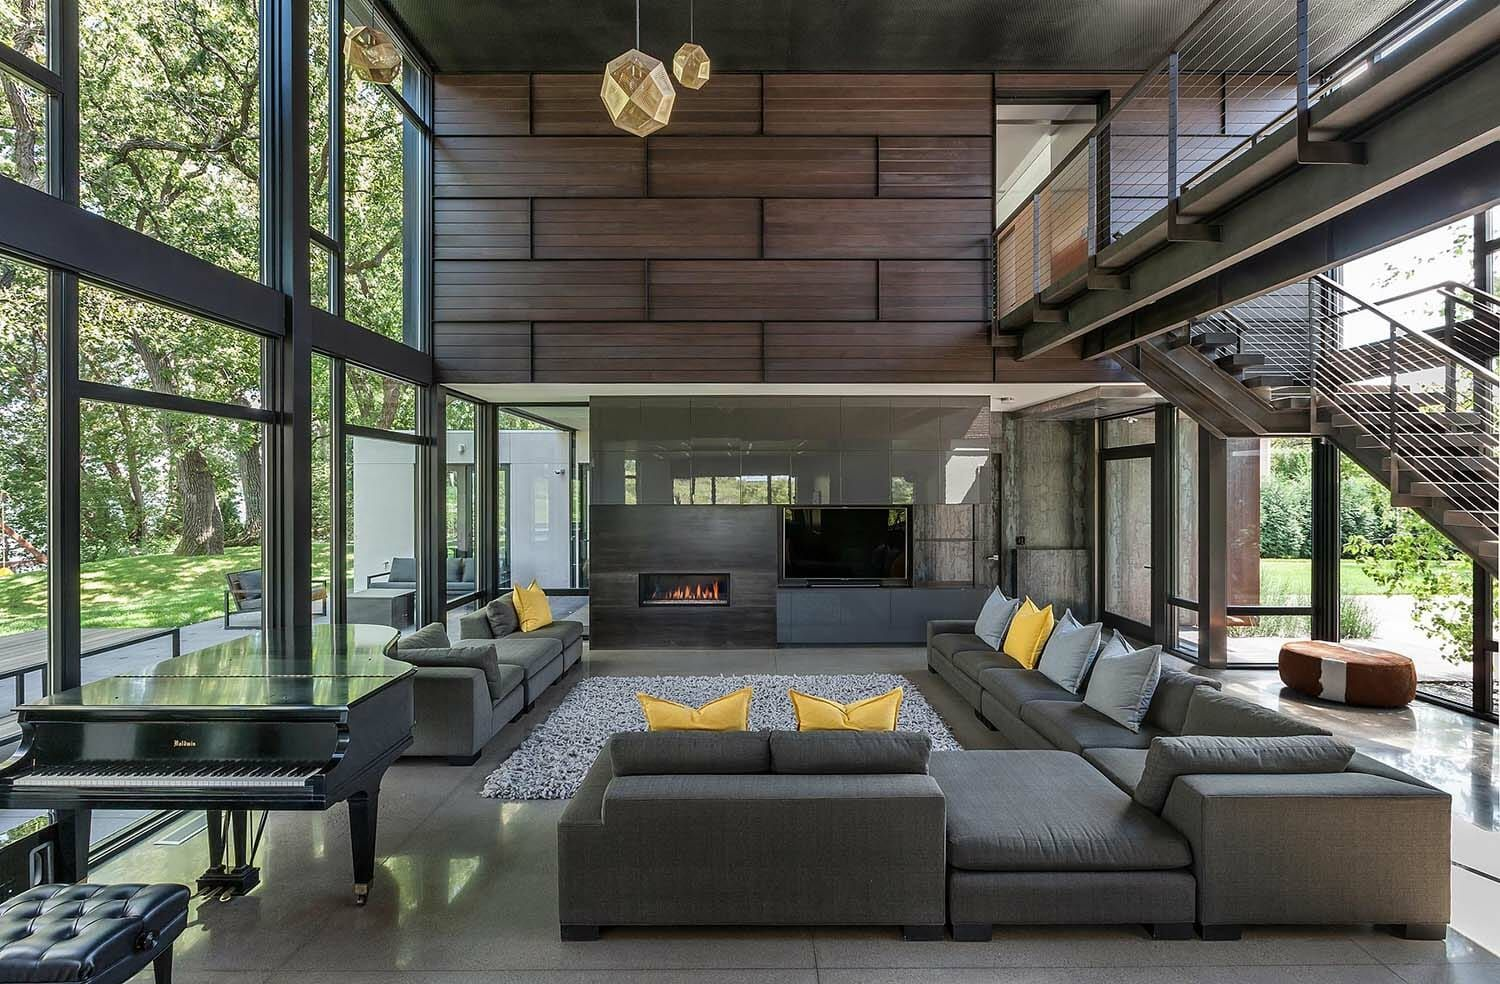 Industrial Modern House Boasts A Serene Lakeside Setting In Minnesota Minimal Interior Design Modern House Design Minimalism Interior